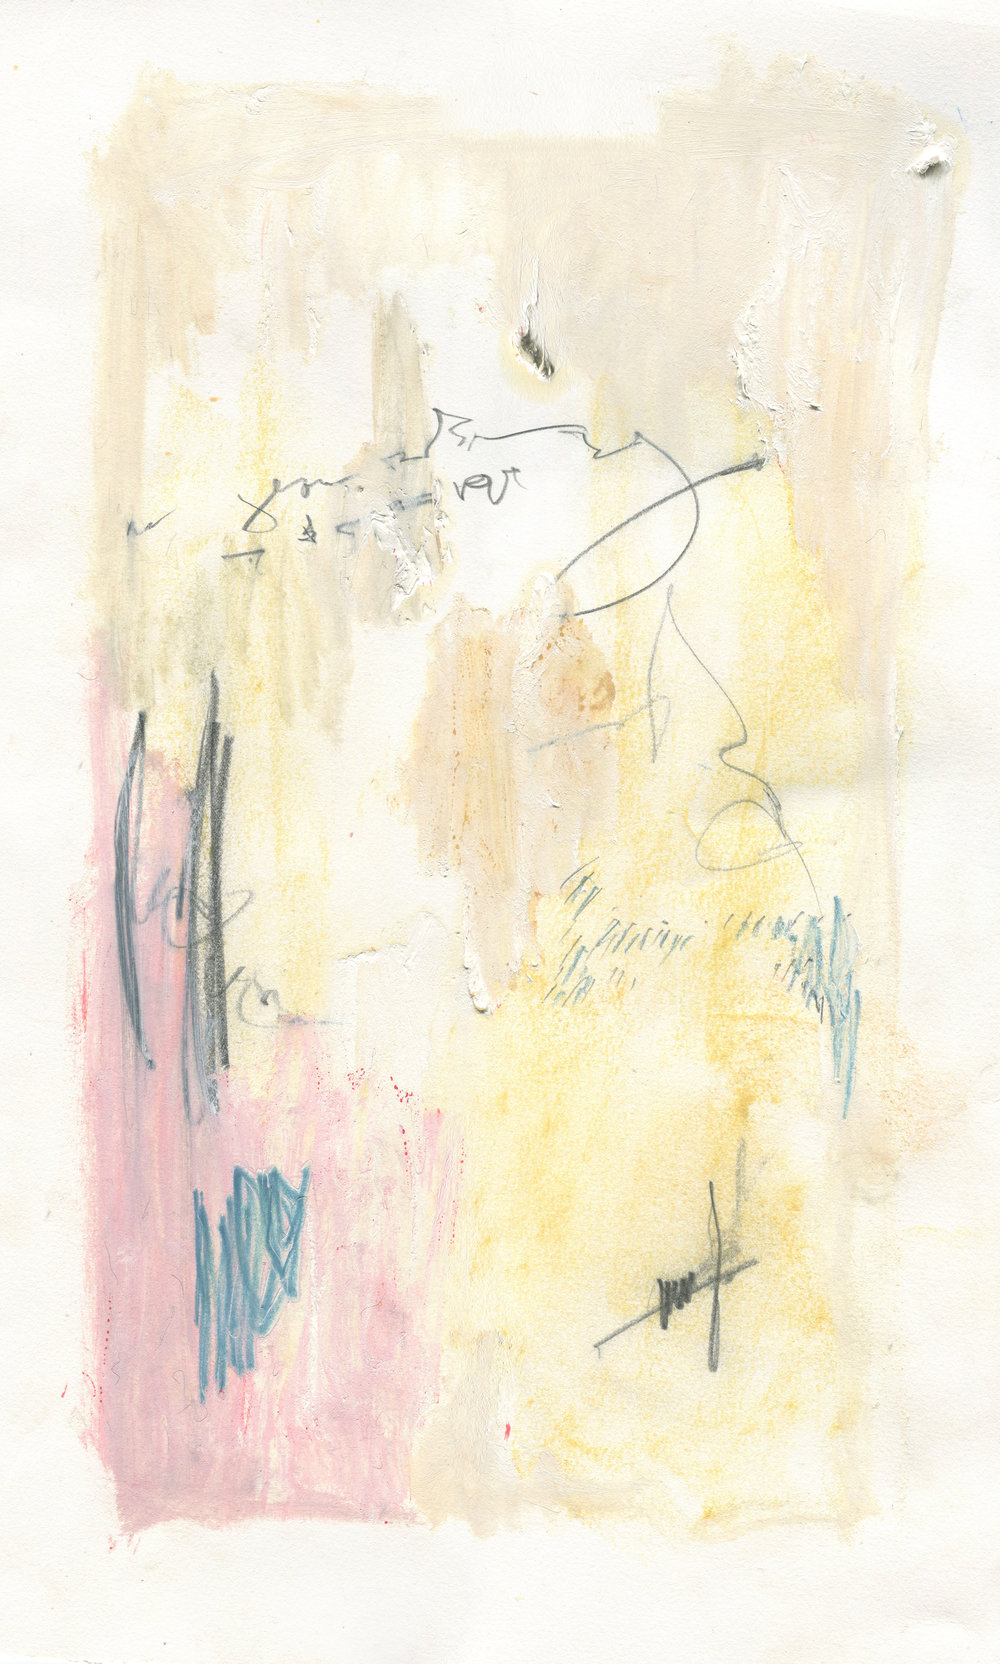 Breathing Heavy ; Breathless,  2016  24 x 15 inches  Chalk Pastel, Graphite, Lithography Crayon, Crayon, and Acrylic on Paper